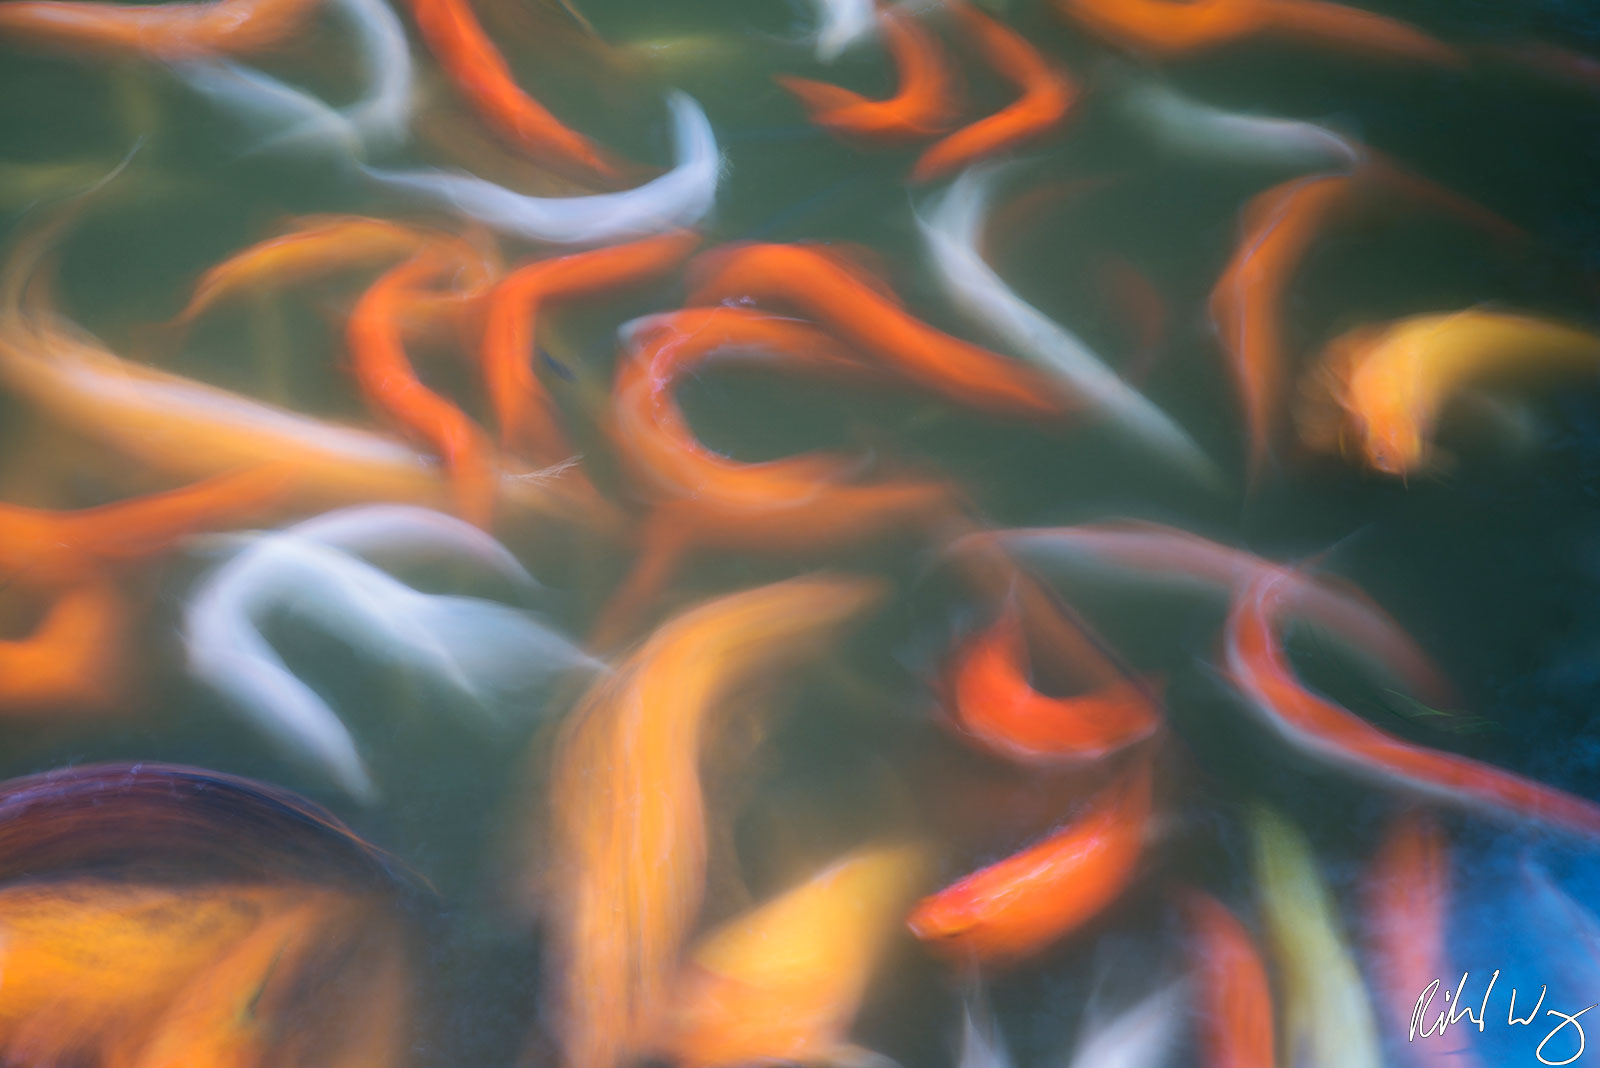 Byodo-In Koi, oahu, hawaii, fish, abstract, photo, photo